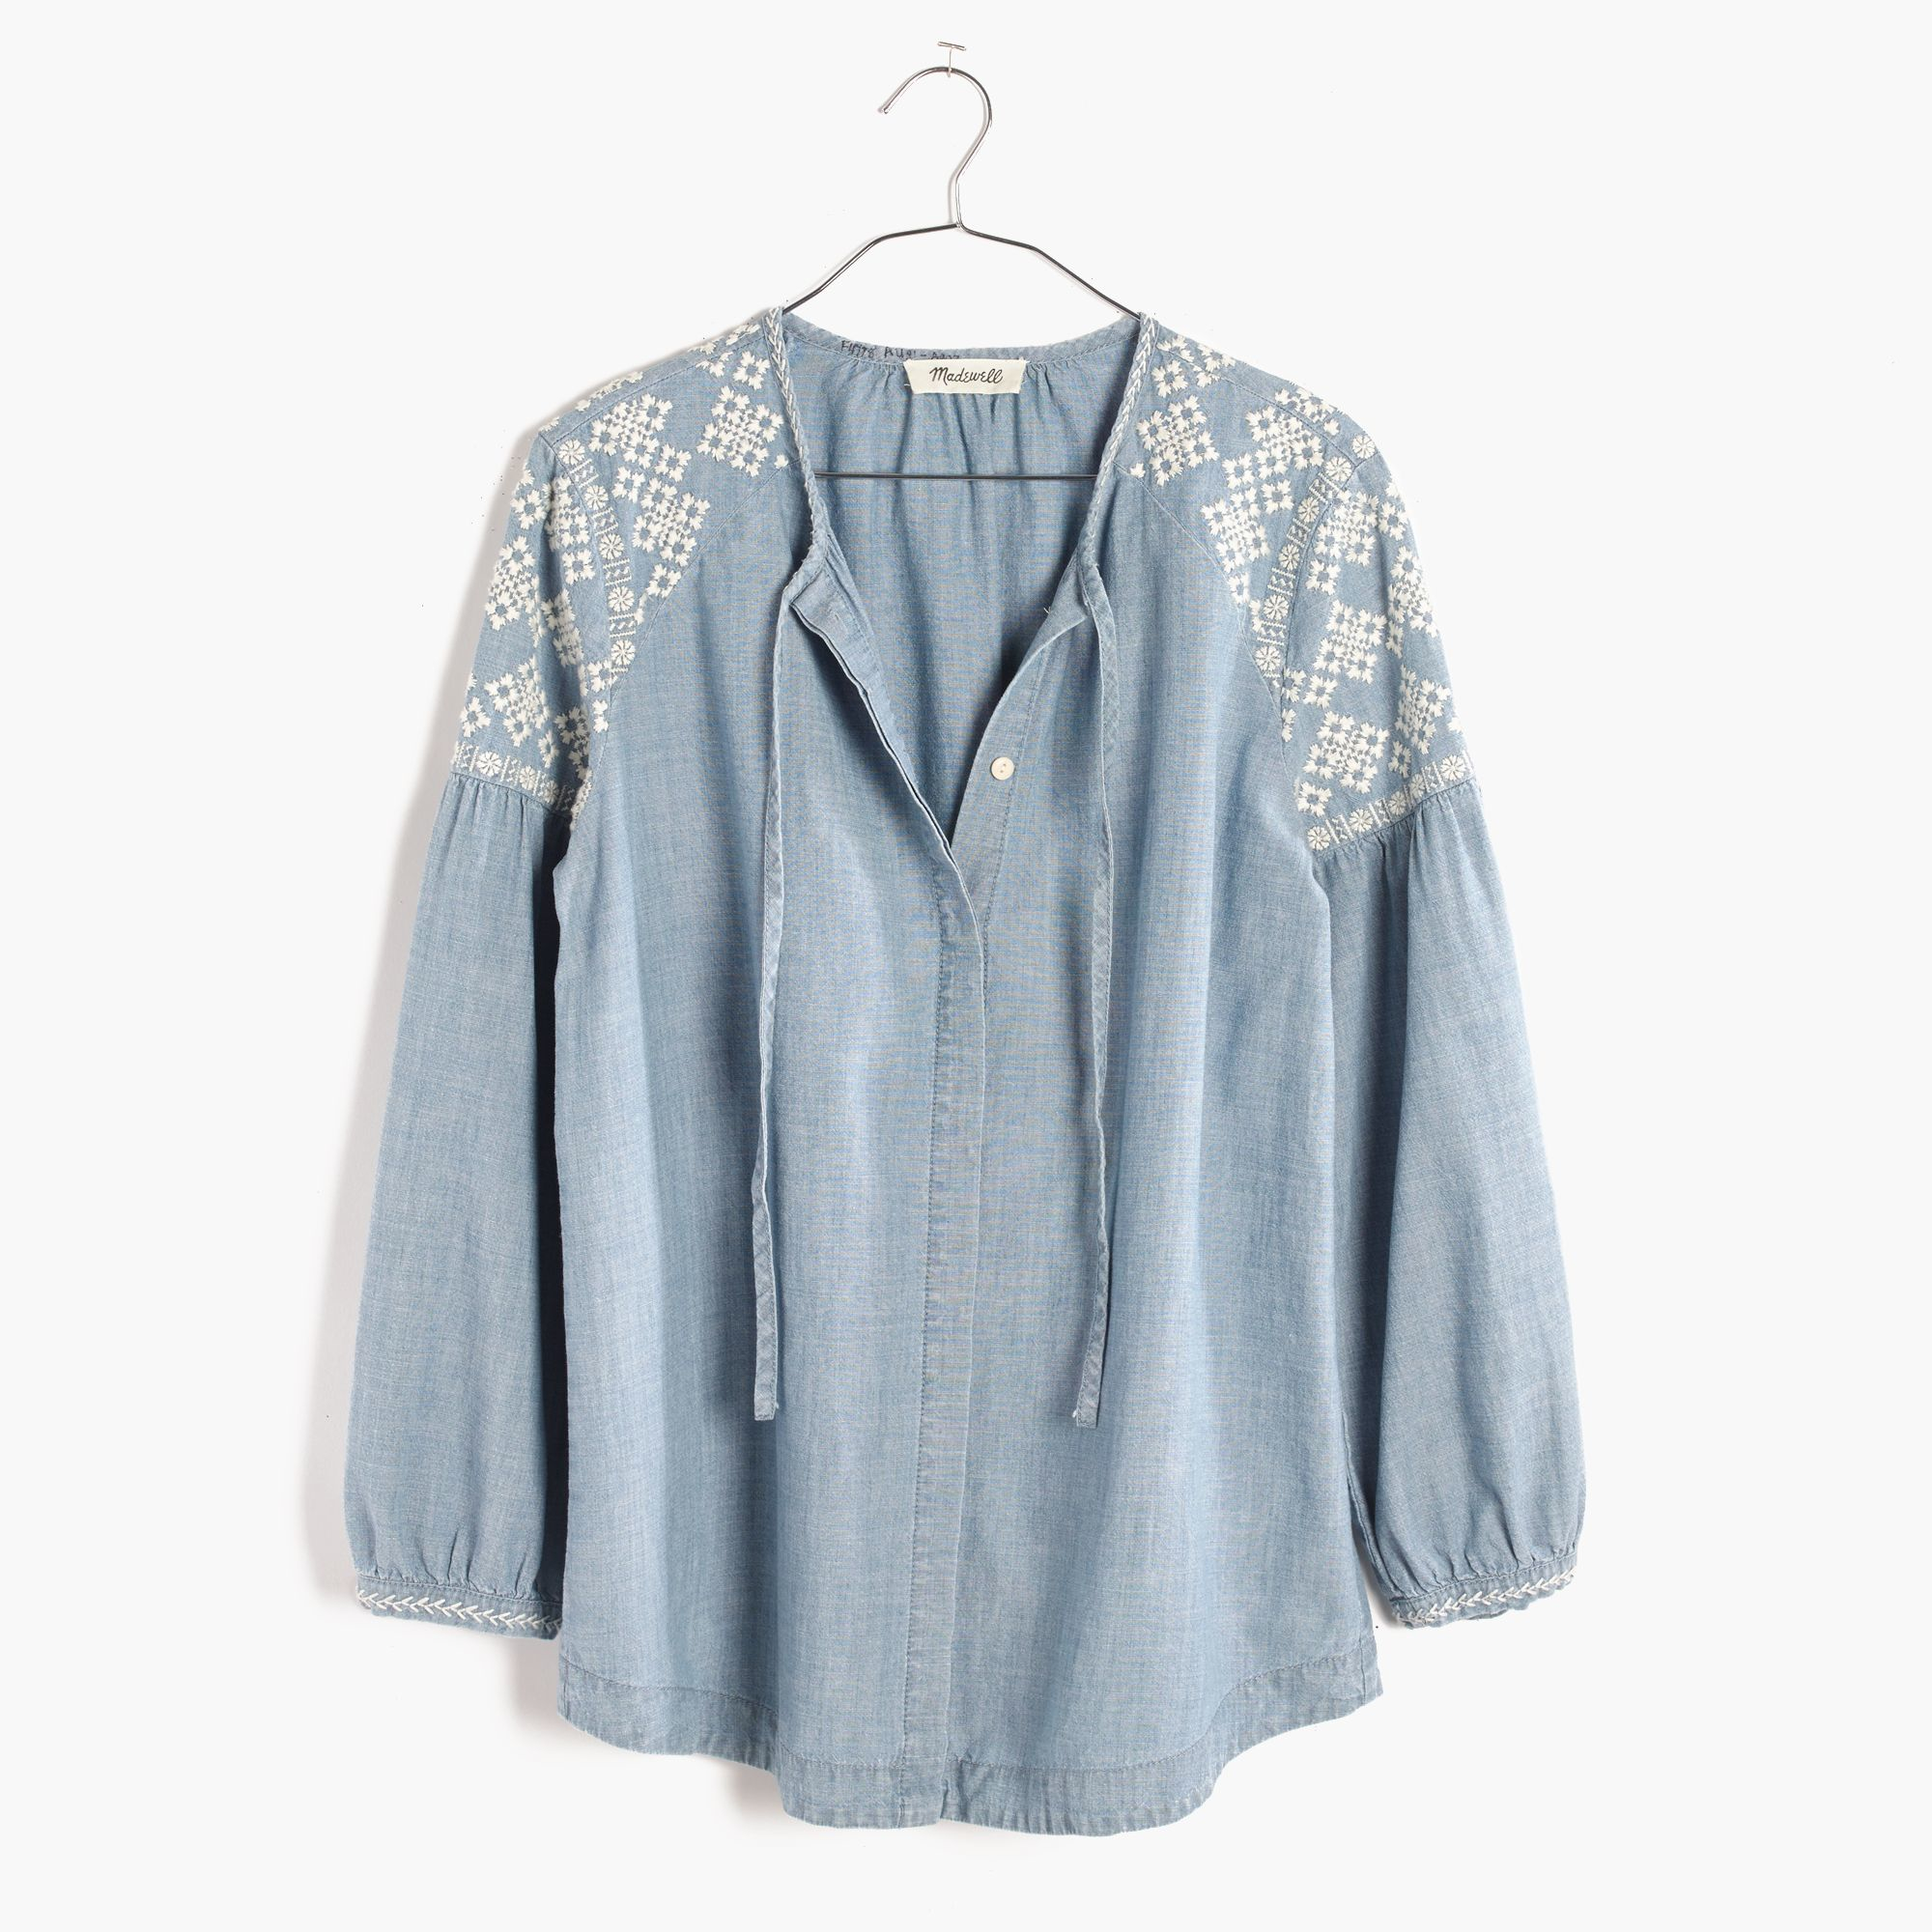 Lyst madewell embroidered chambray tealeaf top in blue for Chambray top